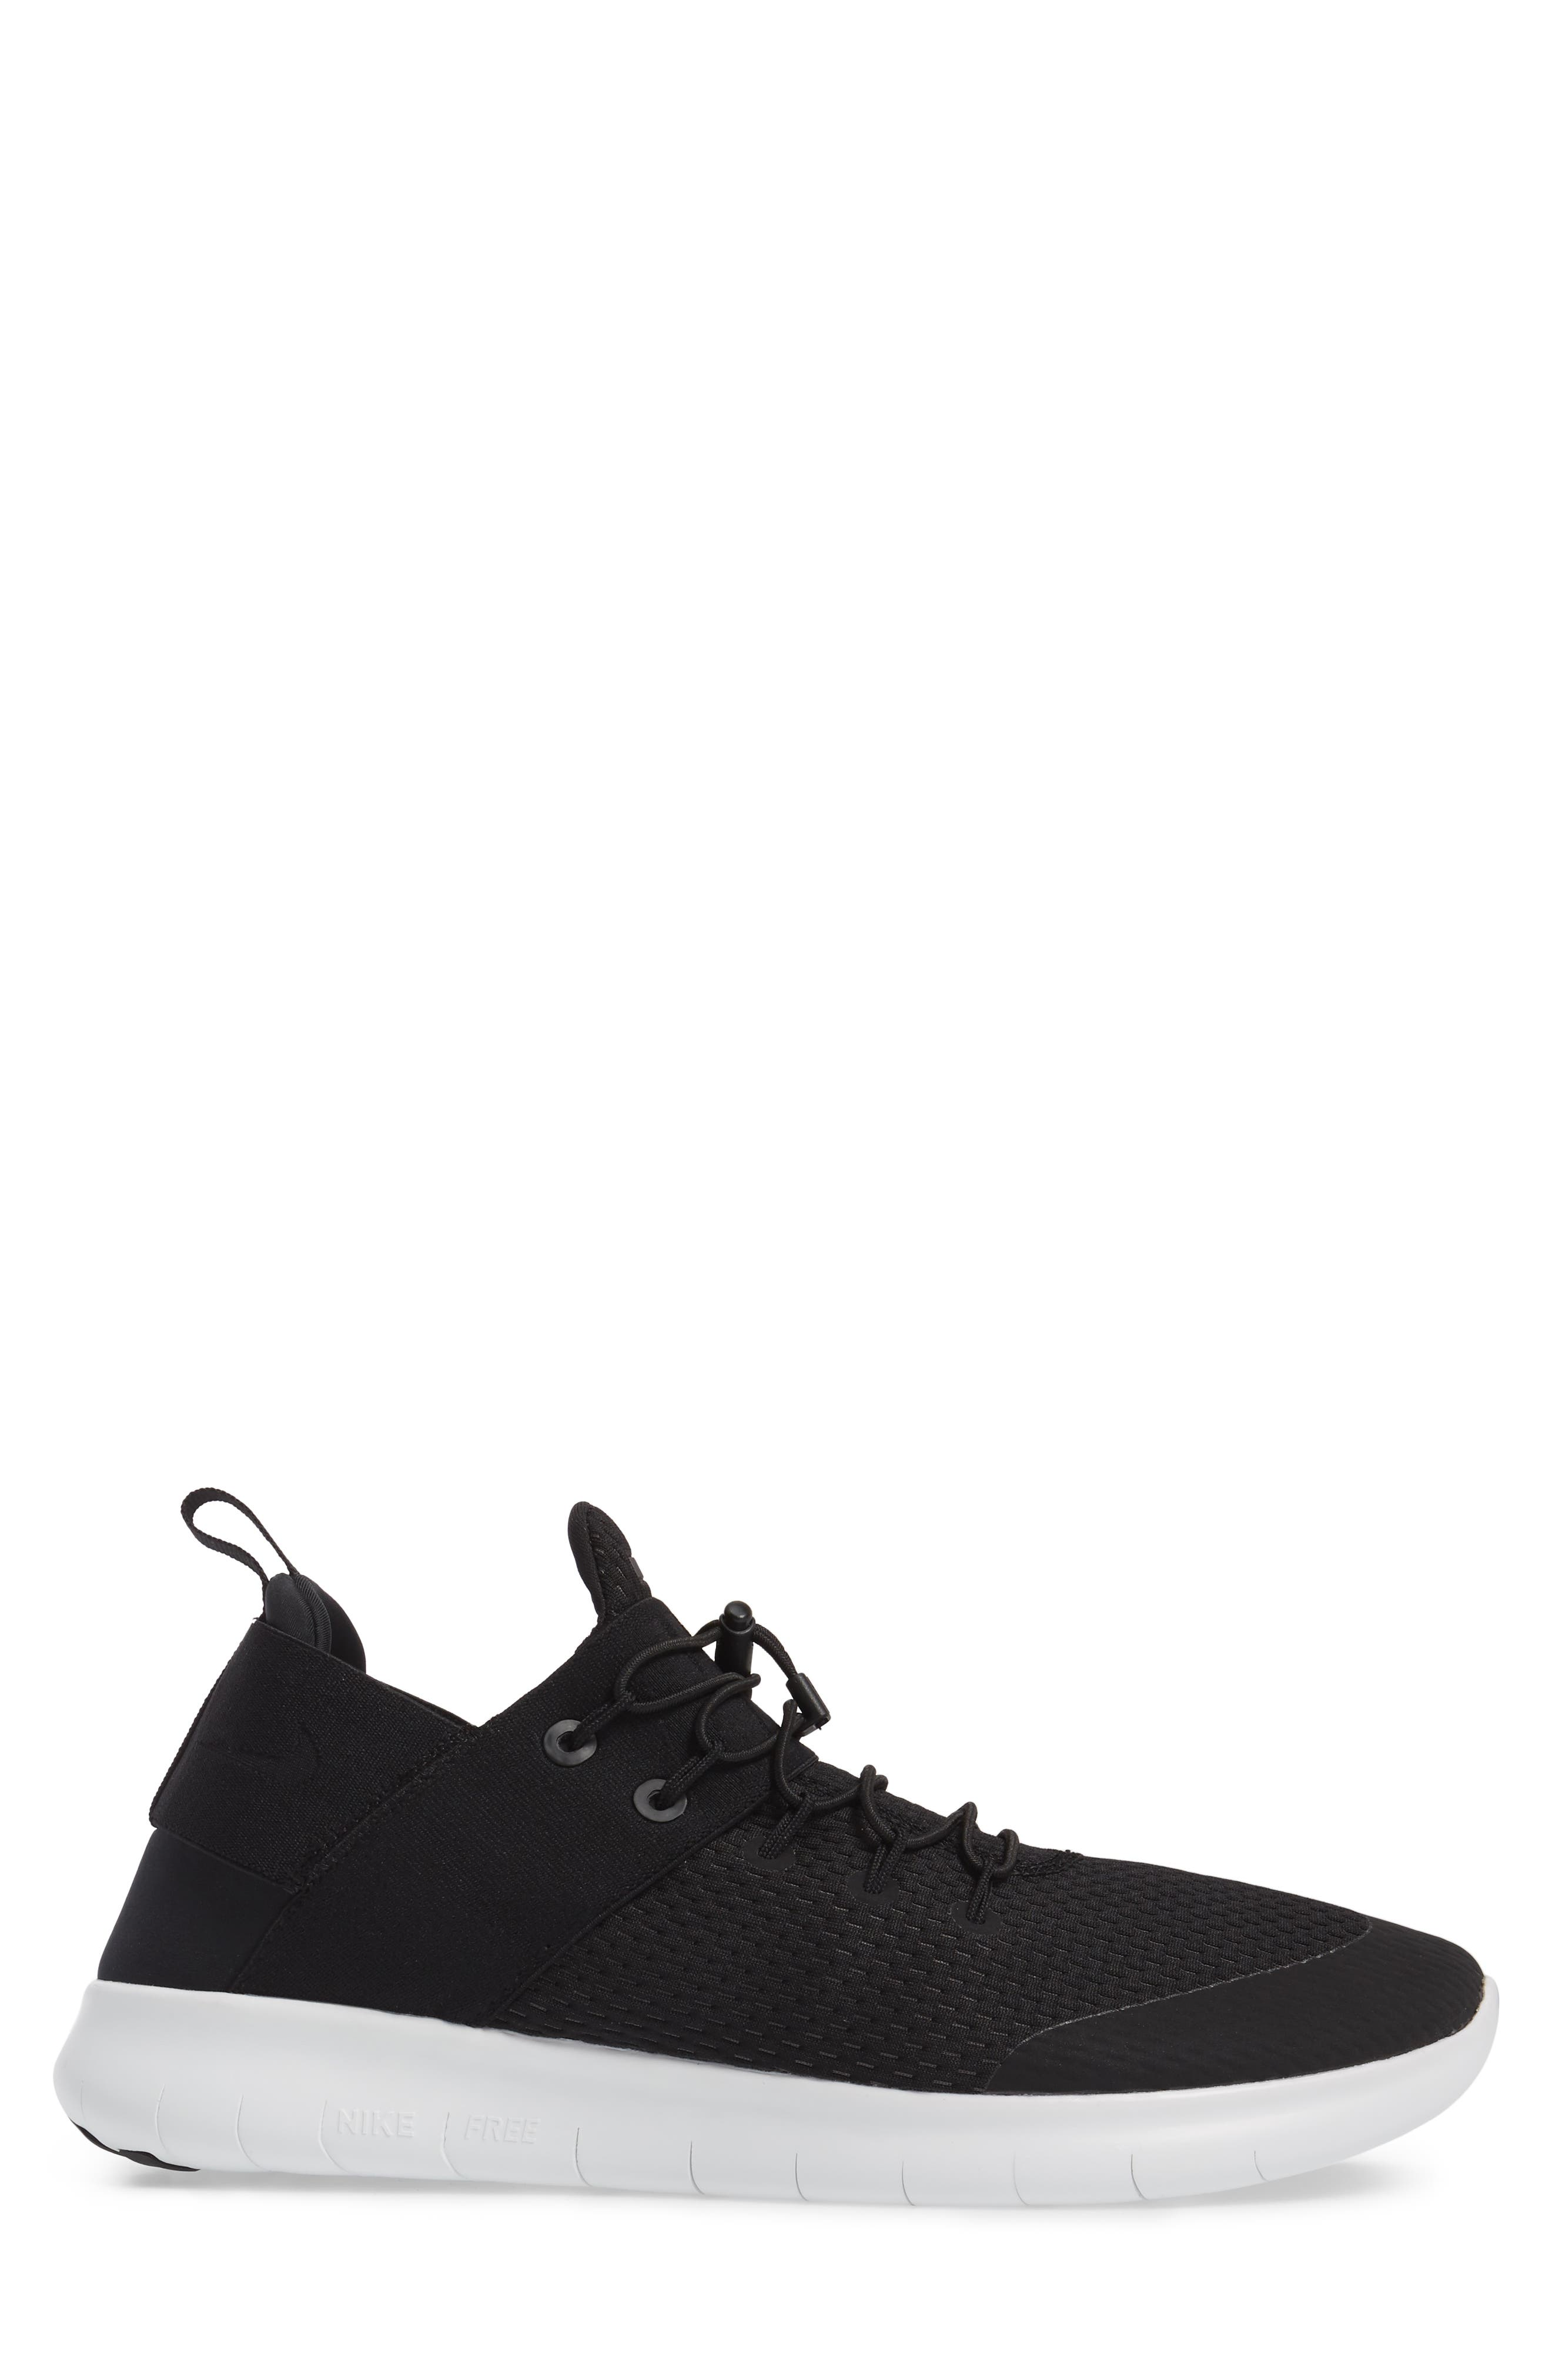 Free RN CMTR 2 Running Shoe,                             Alternate thumbnail 3, color,                             BLACK/ ANTHRACITE/ OFF WHITE